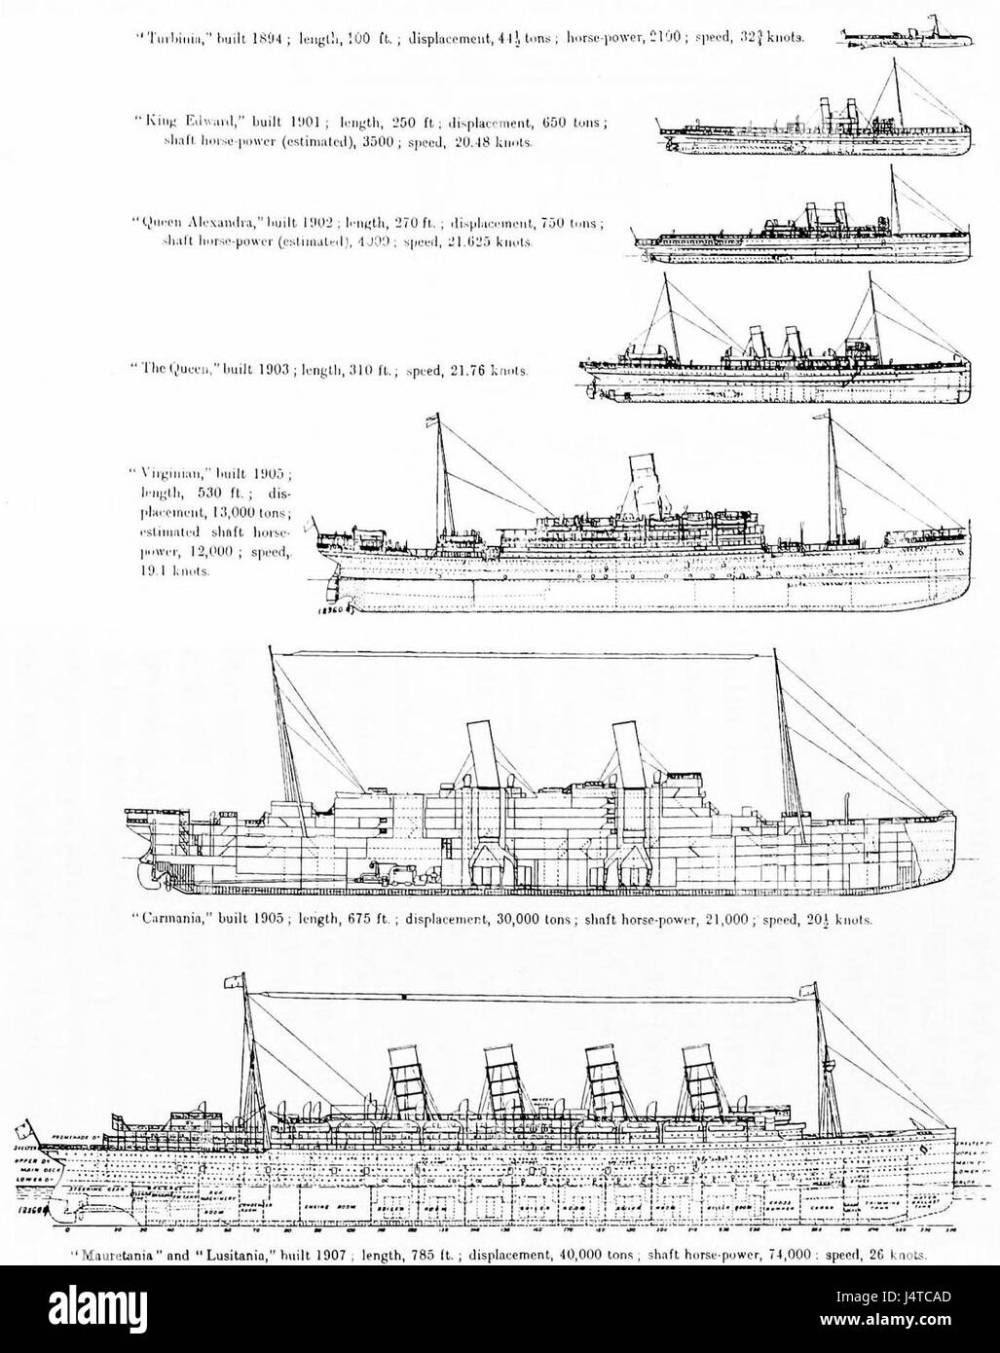 medium resolution of the steam turbine 1911 fig 40 diagram showing growth in the size of turbine propelled merchant ships